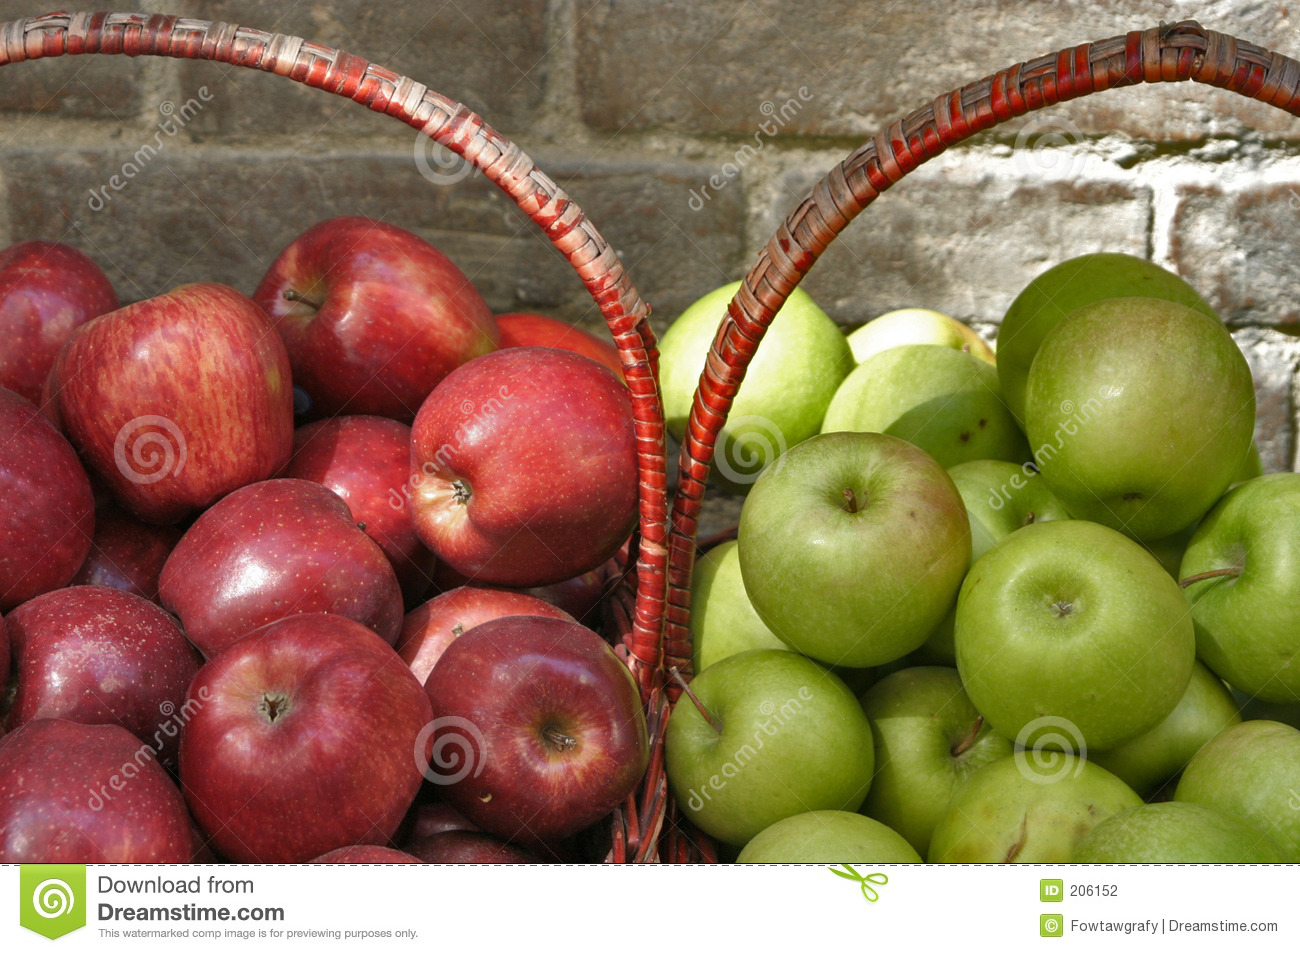 green and red apples in basket. royalty-free stock photo. download baskets of red and green apples in basket